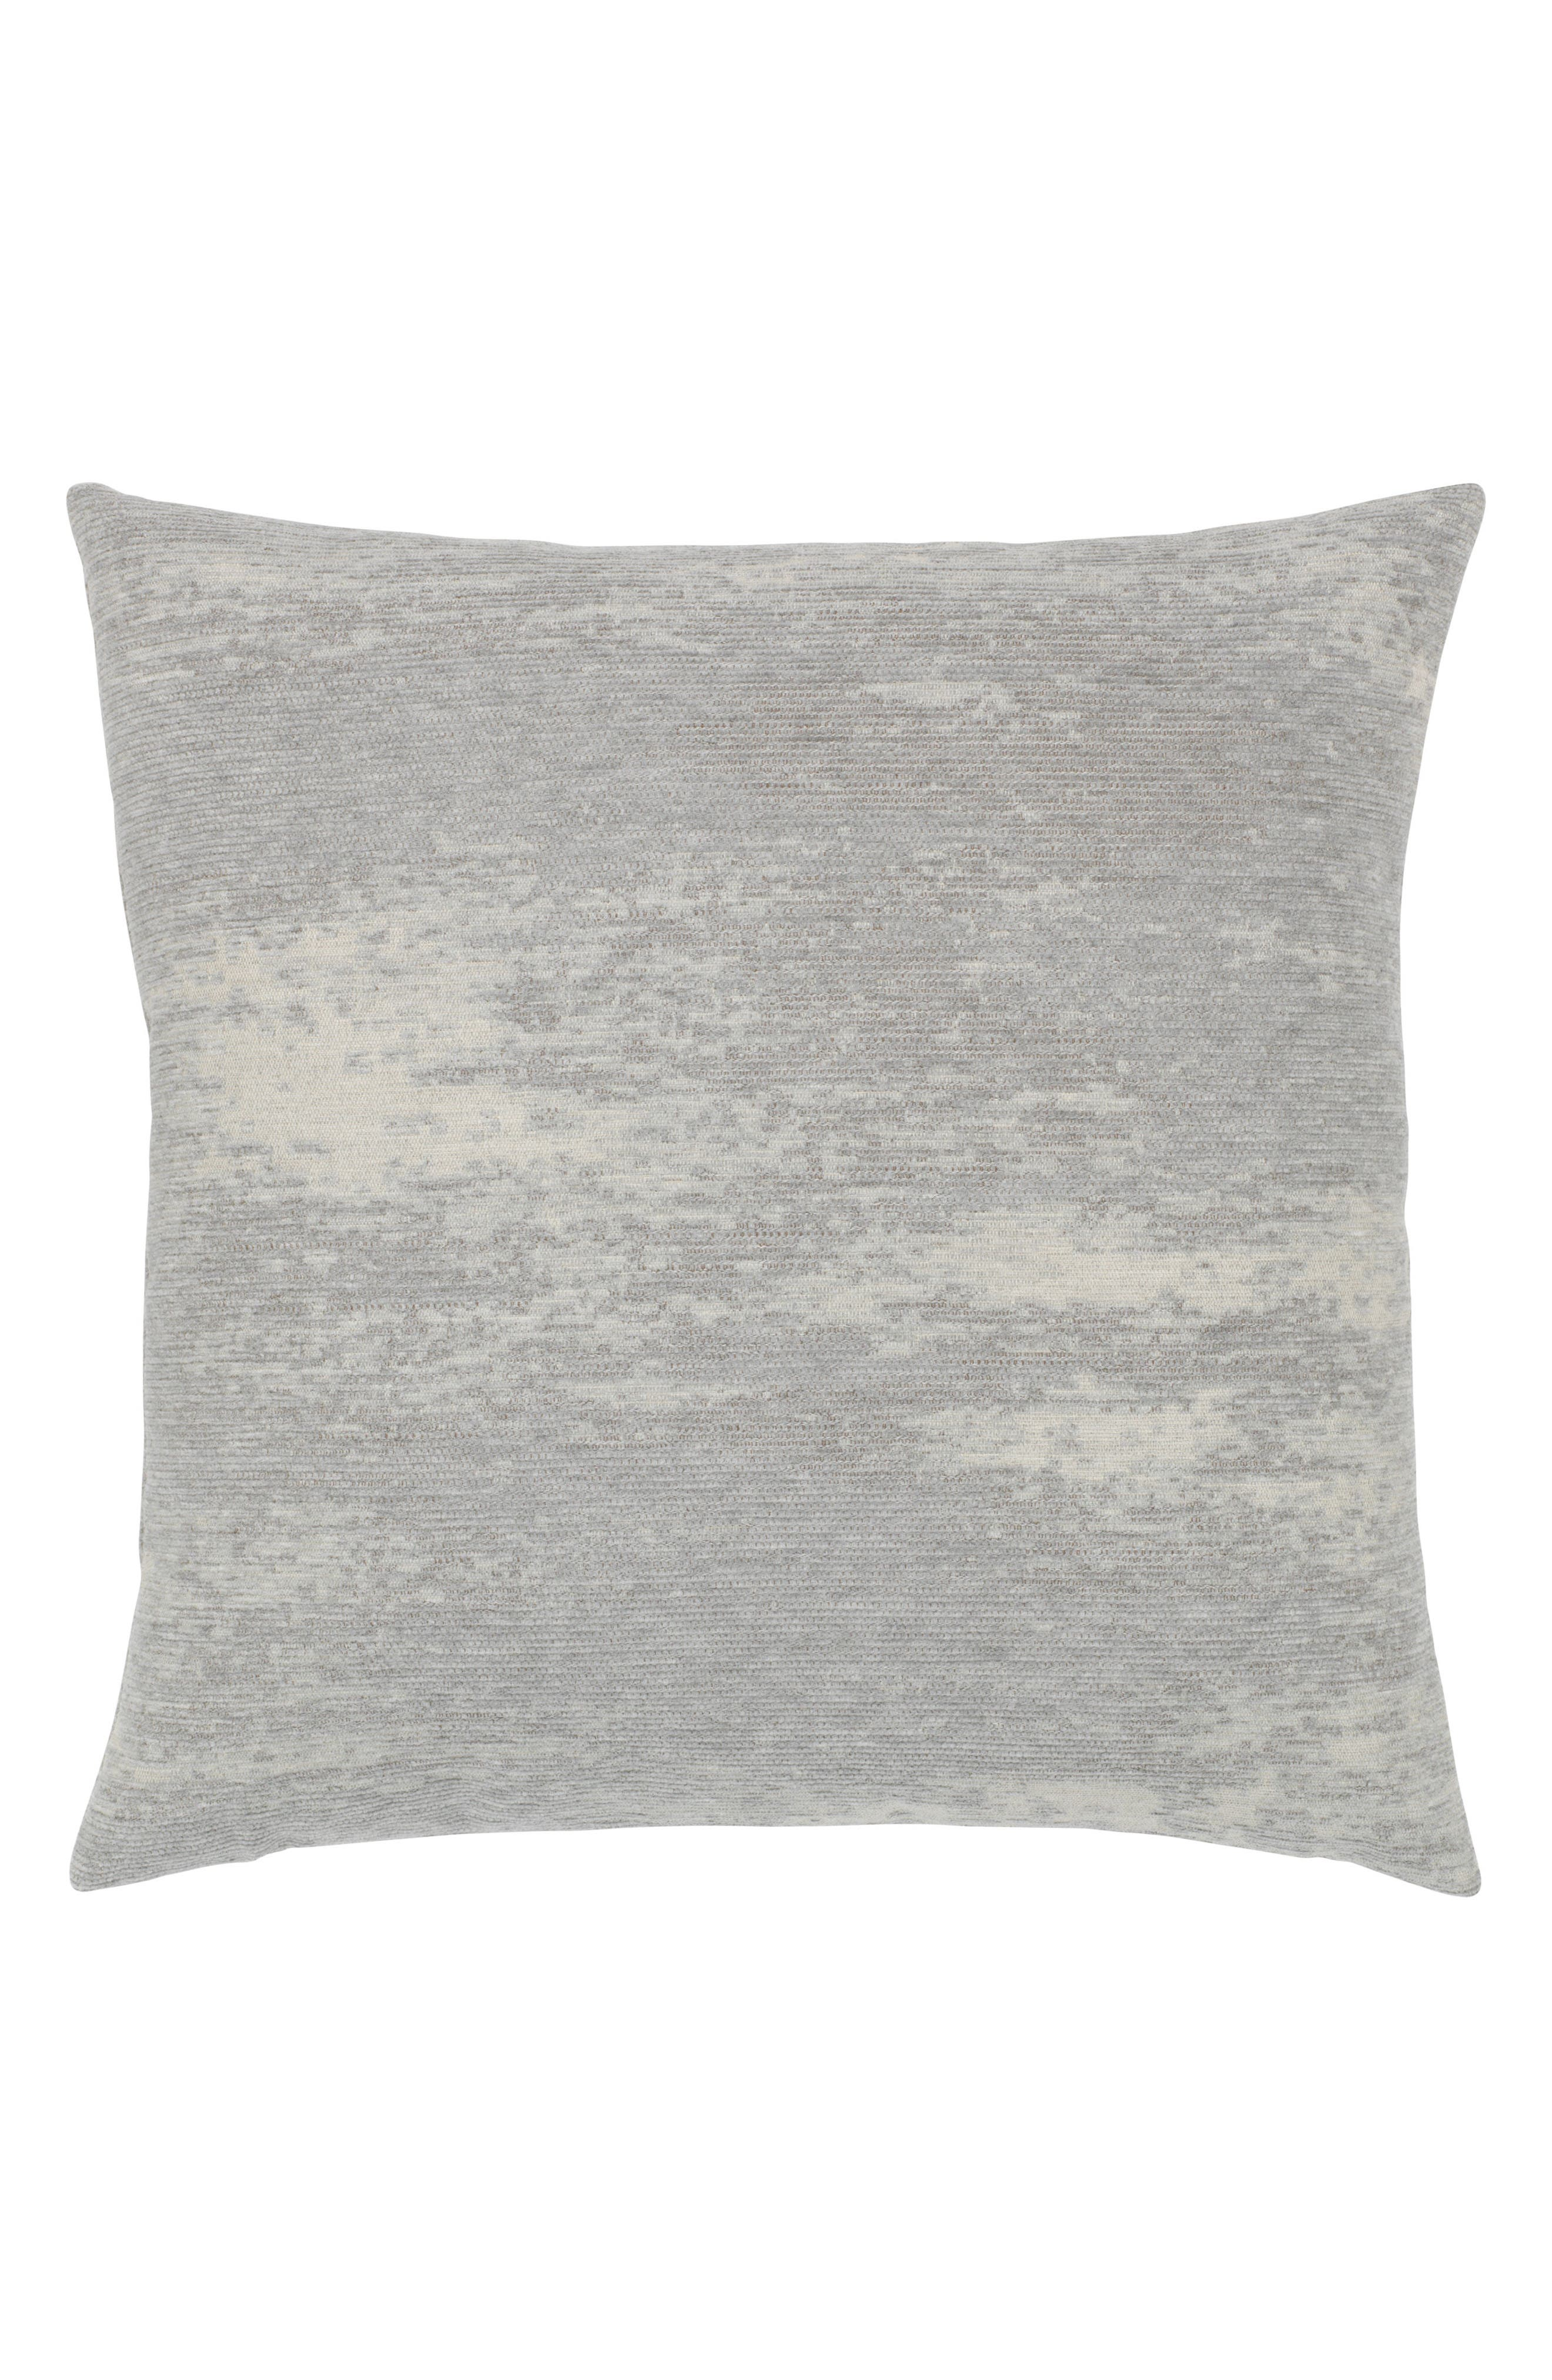 ELAINE SMITH,                             Distressed Granite Indoor/Outdoor Accent Pillow,                             Main thumbnail 1, color,                             020